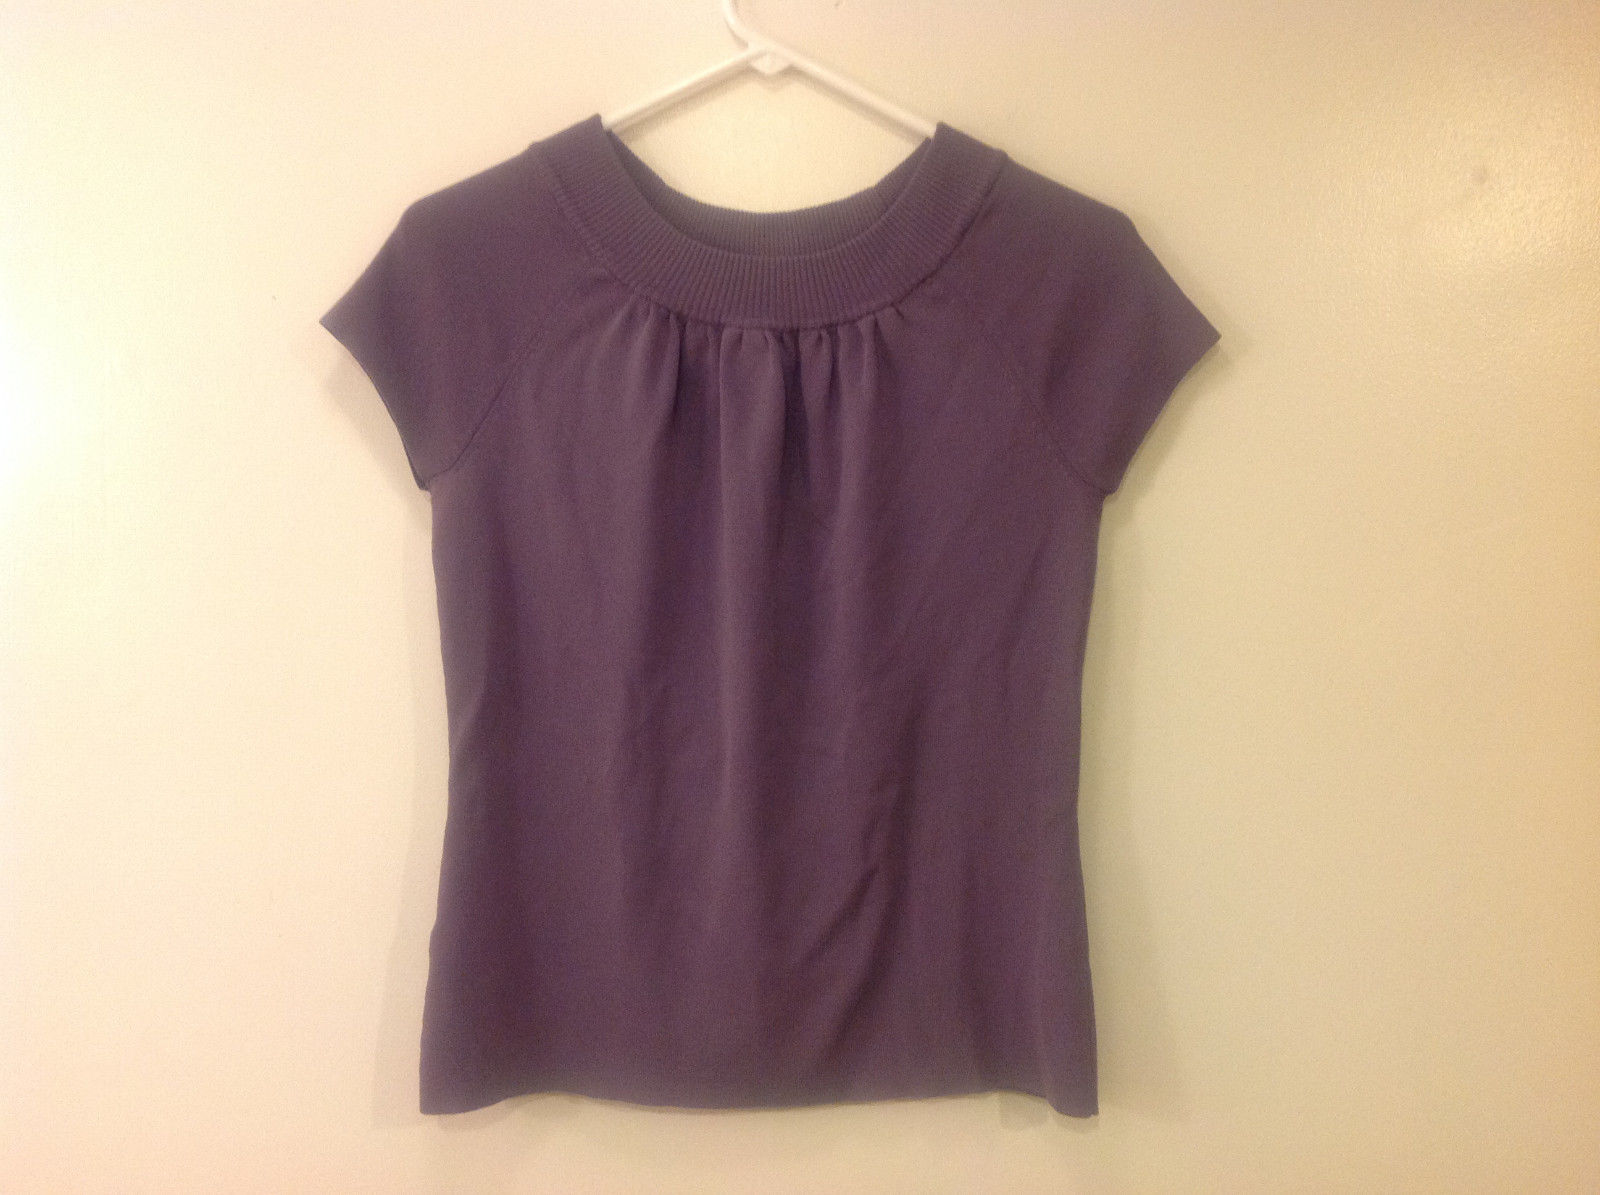 Ann Taylor LOFT Women Size M Sweater Knit Top Purple Short Sleeves Ruched Fitted